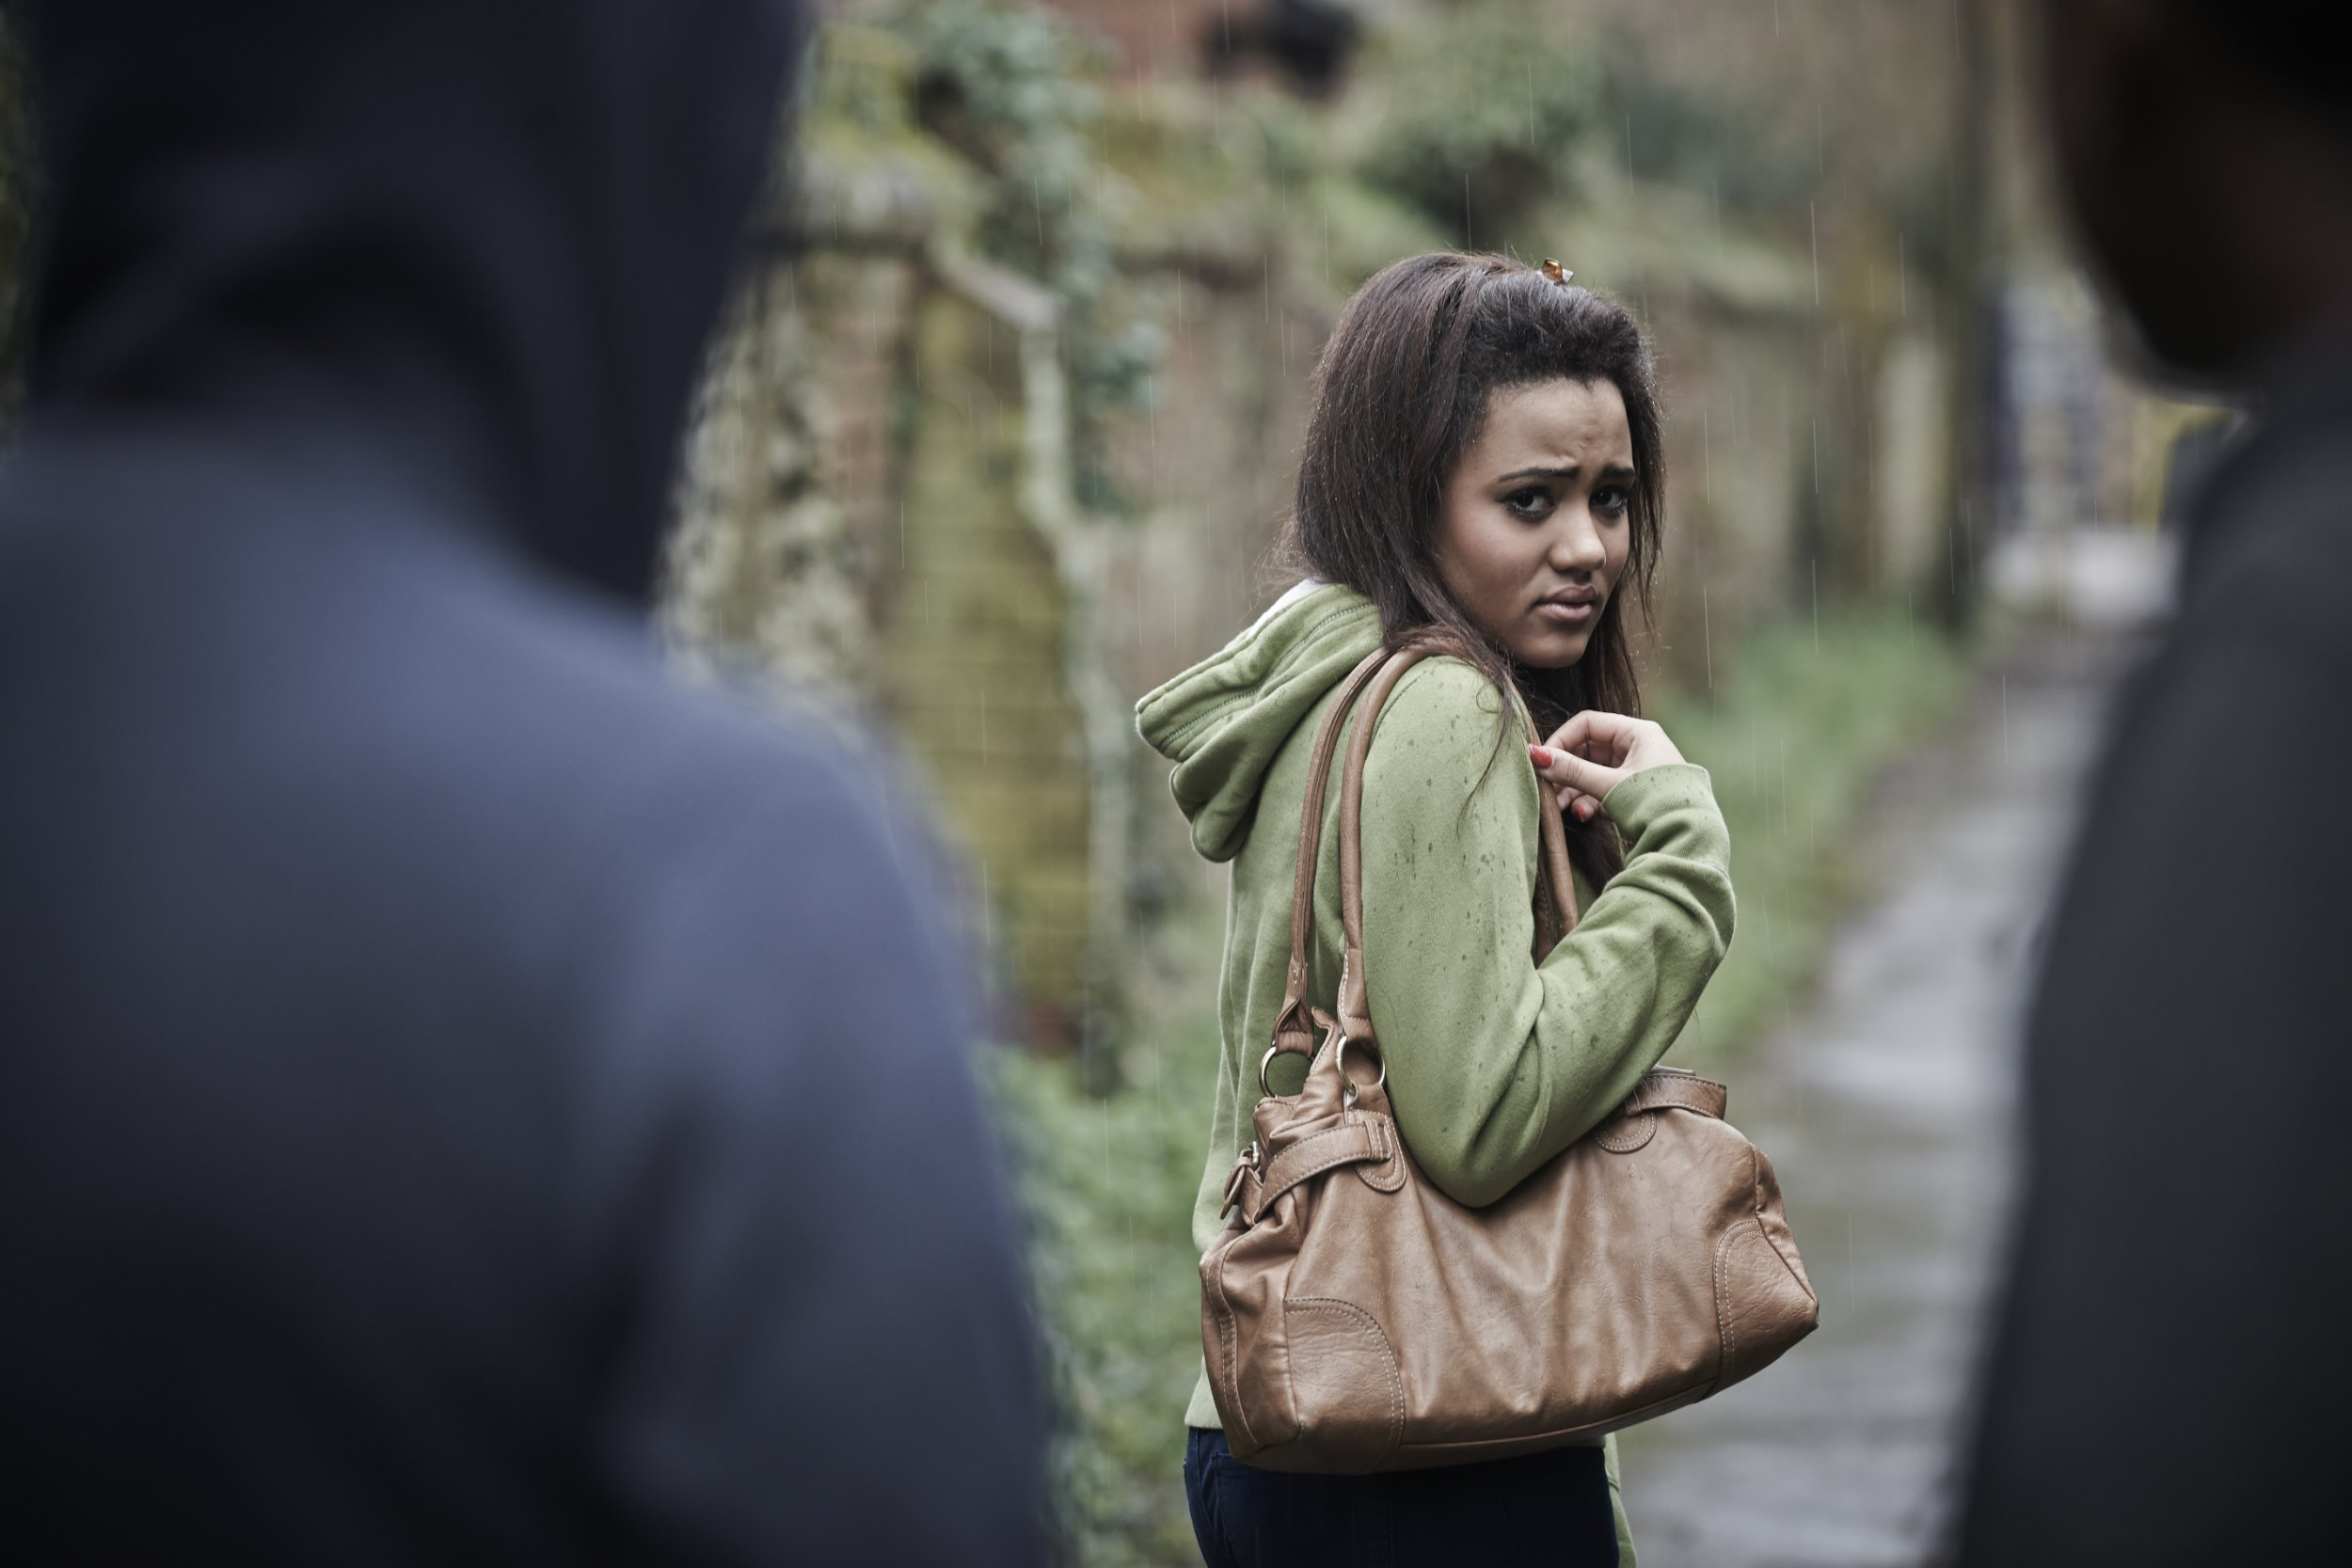 1 in 5 girls worry about sexual harassment every single day